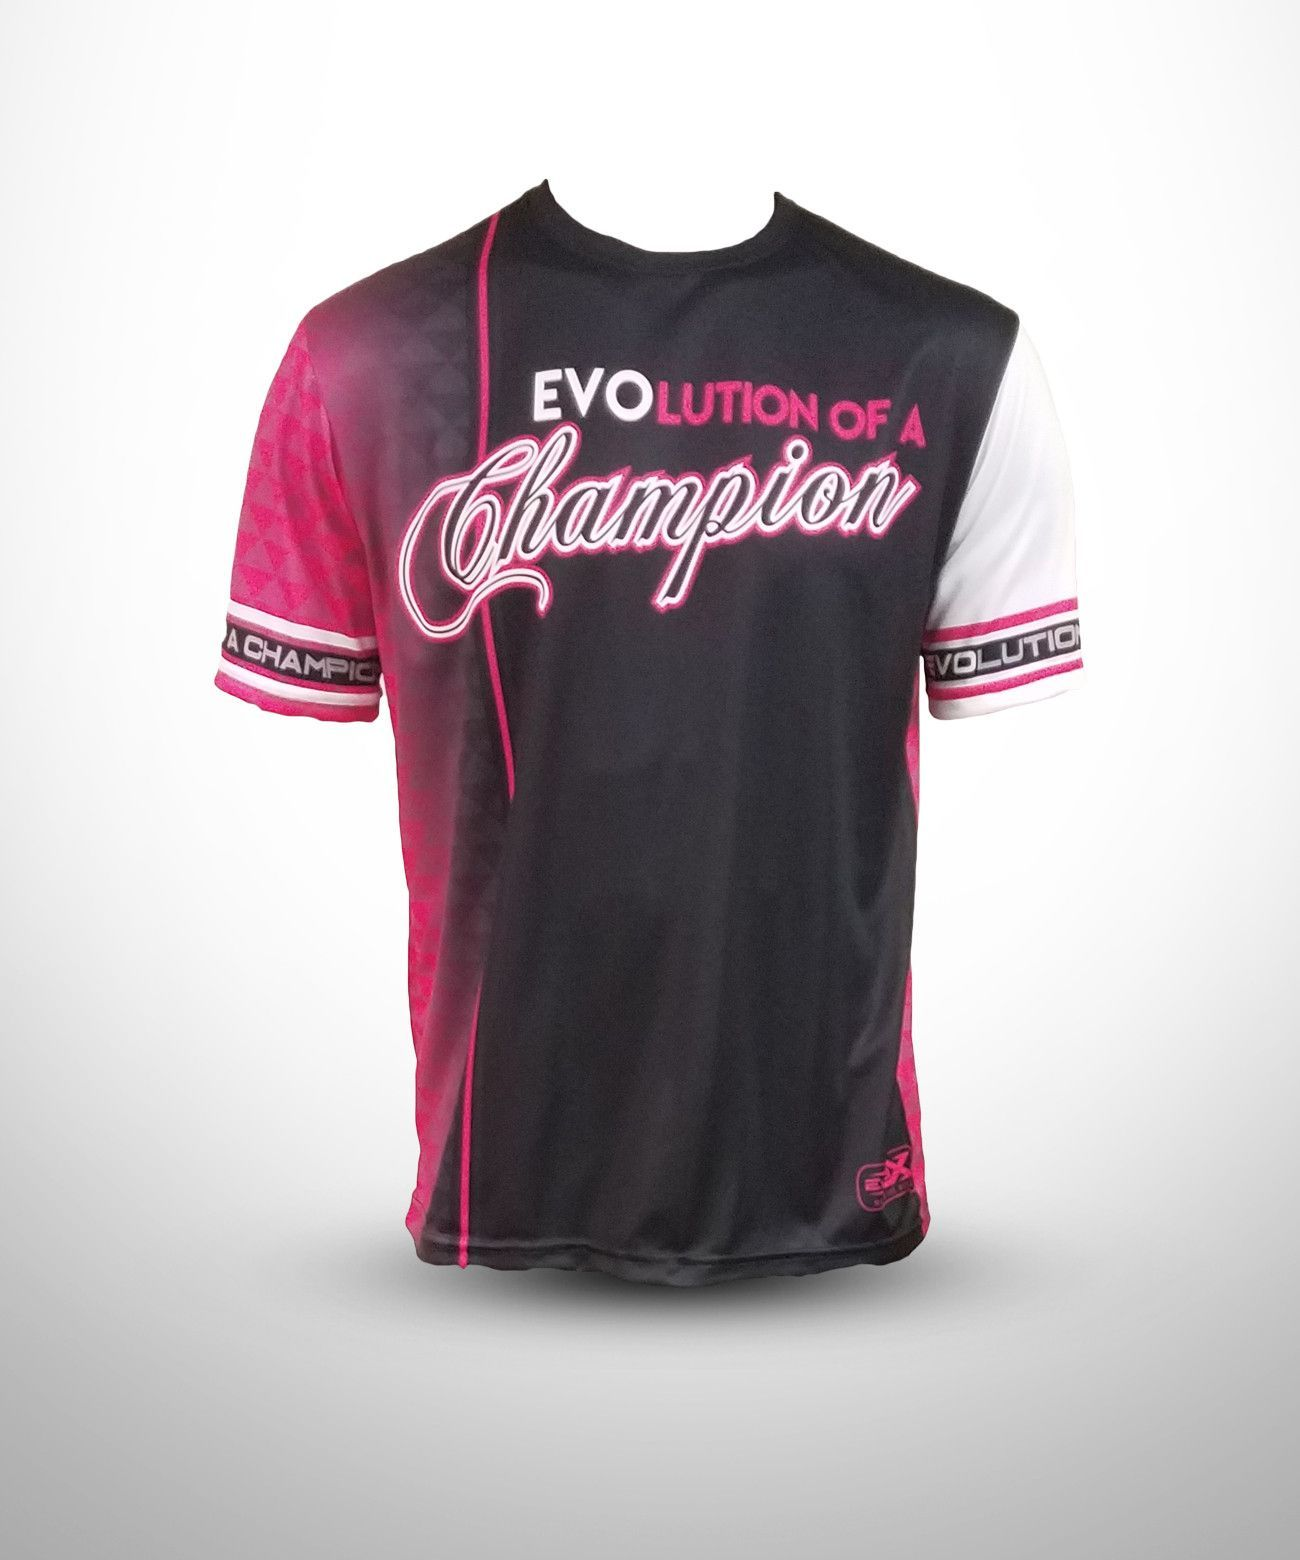 Full Dye Sublimated Jersey Willie Allen Series Jersey Design Jersey Clothes Design